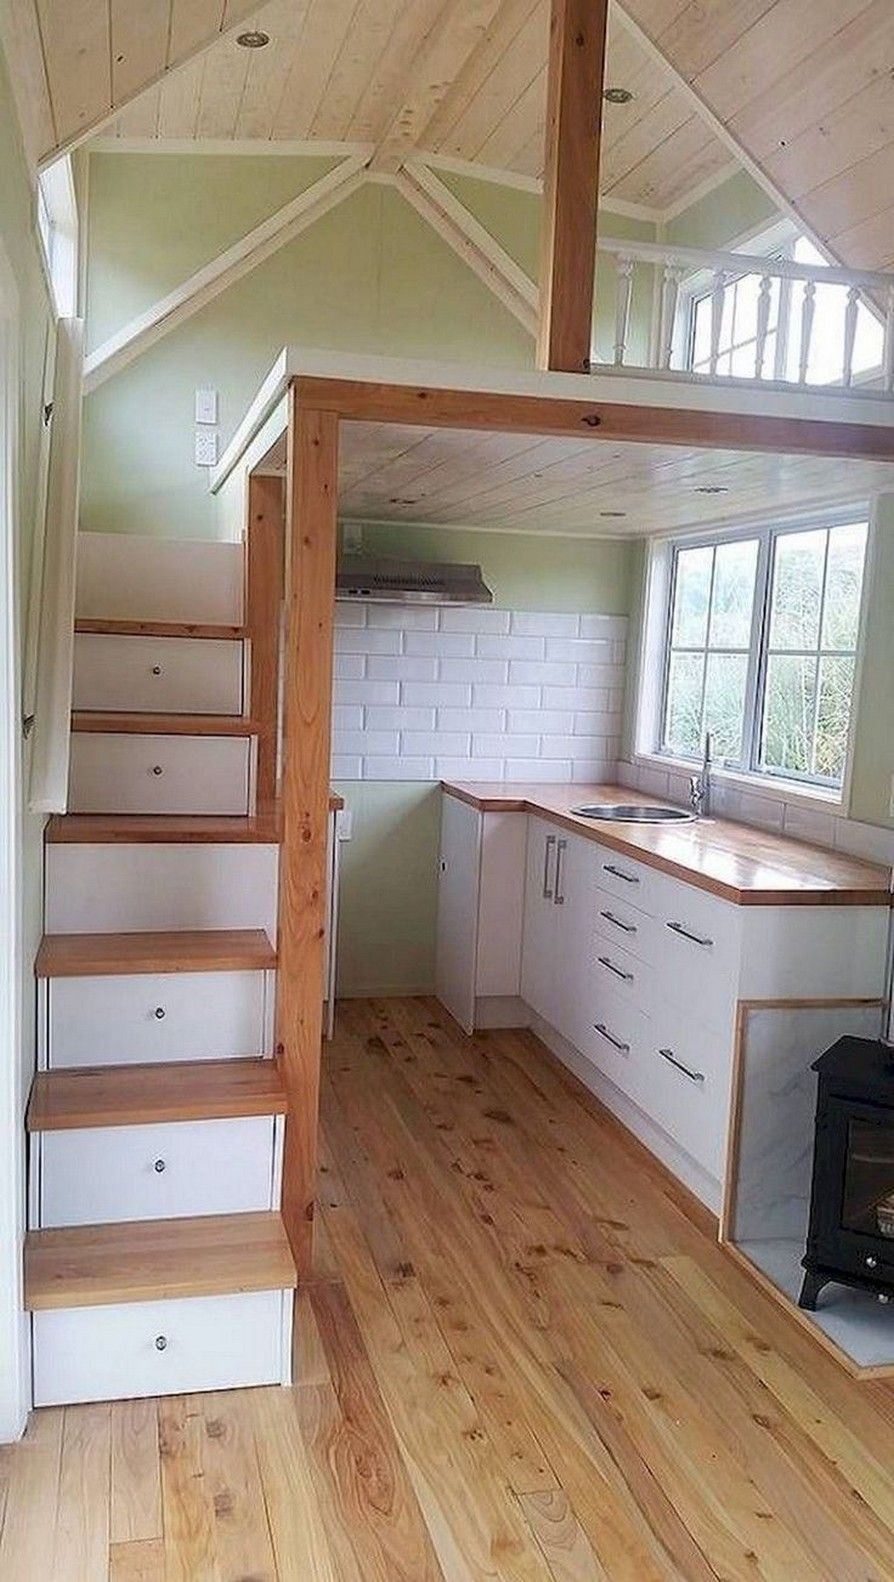 Custom 21 Ft Loft Edition Tiny House For Rent In Vancouver British Columbia 11 A Virtual Zo In 2020 Tiny House Loft Tiny Houses Plans With Loft House Plan With Loft